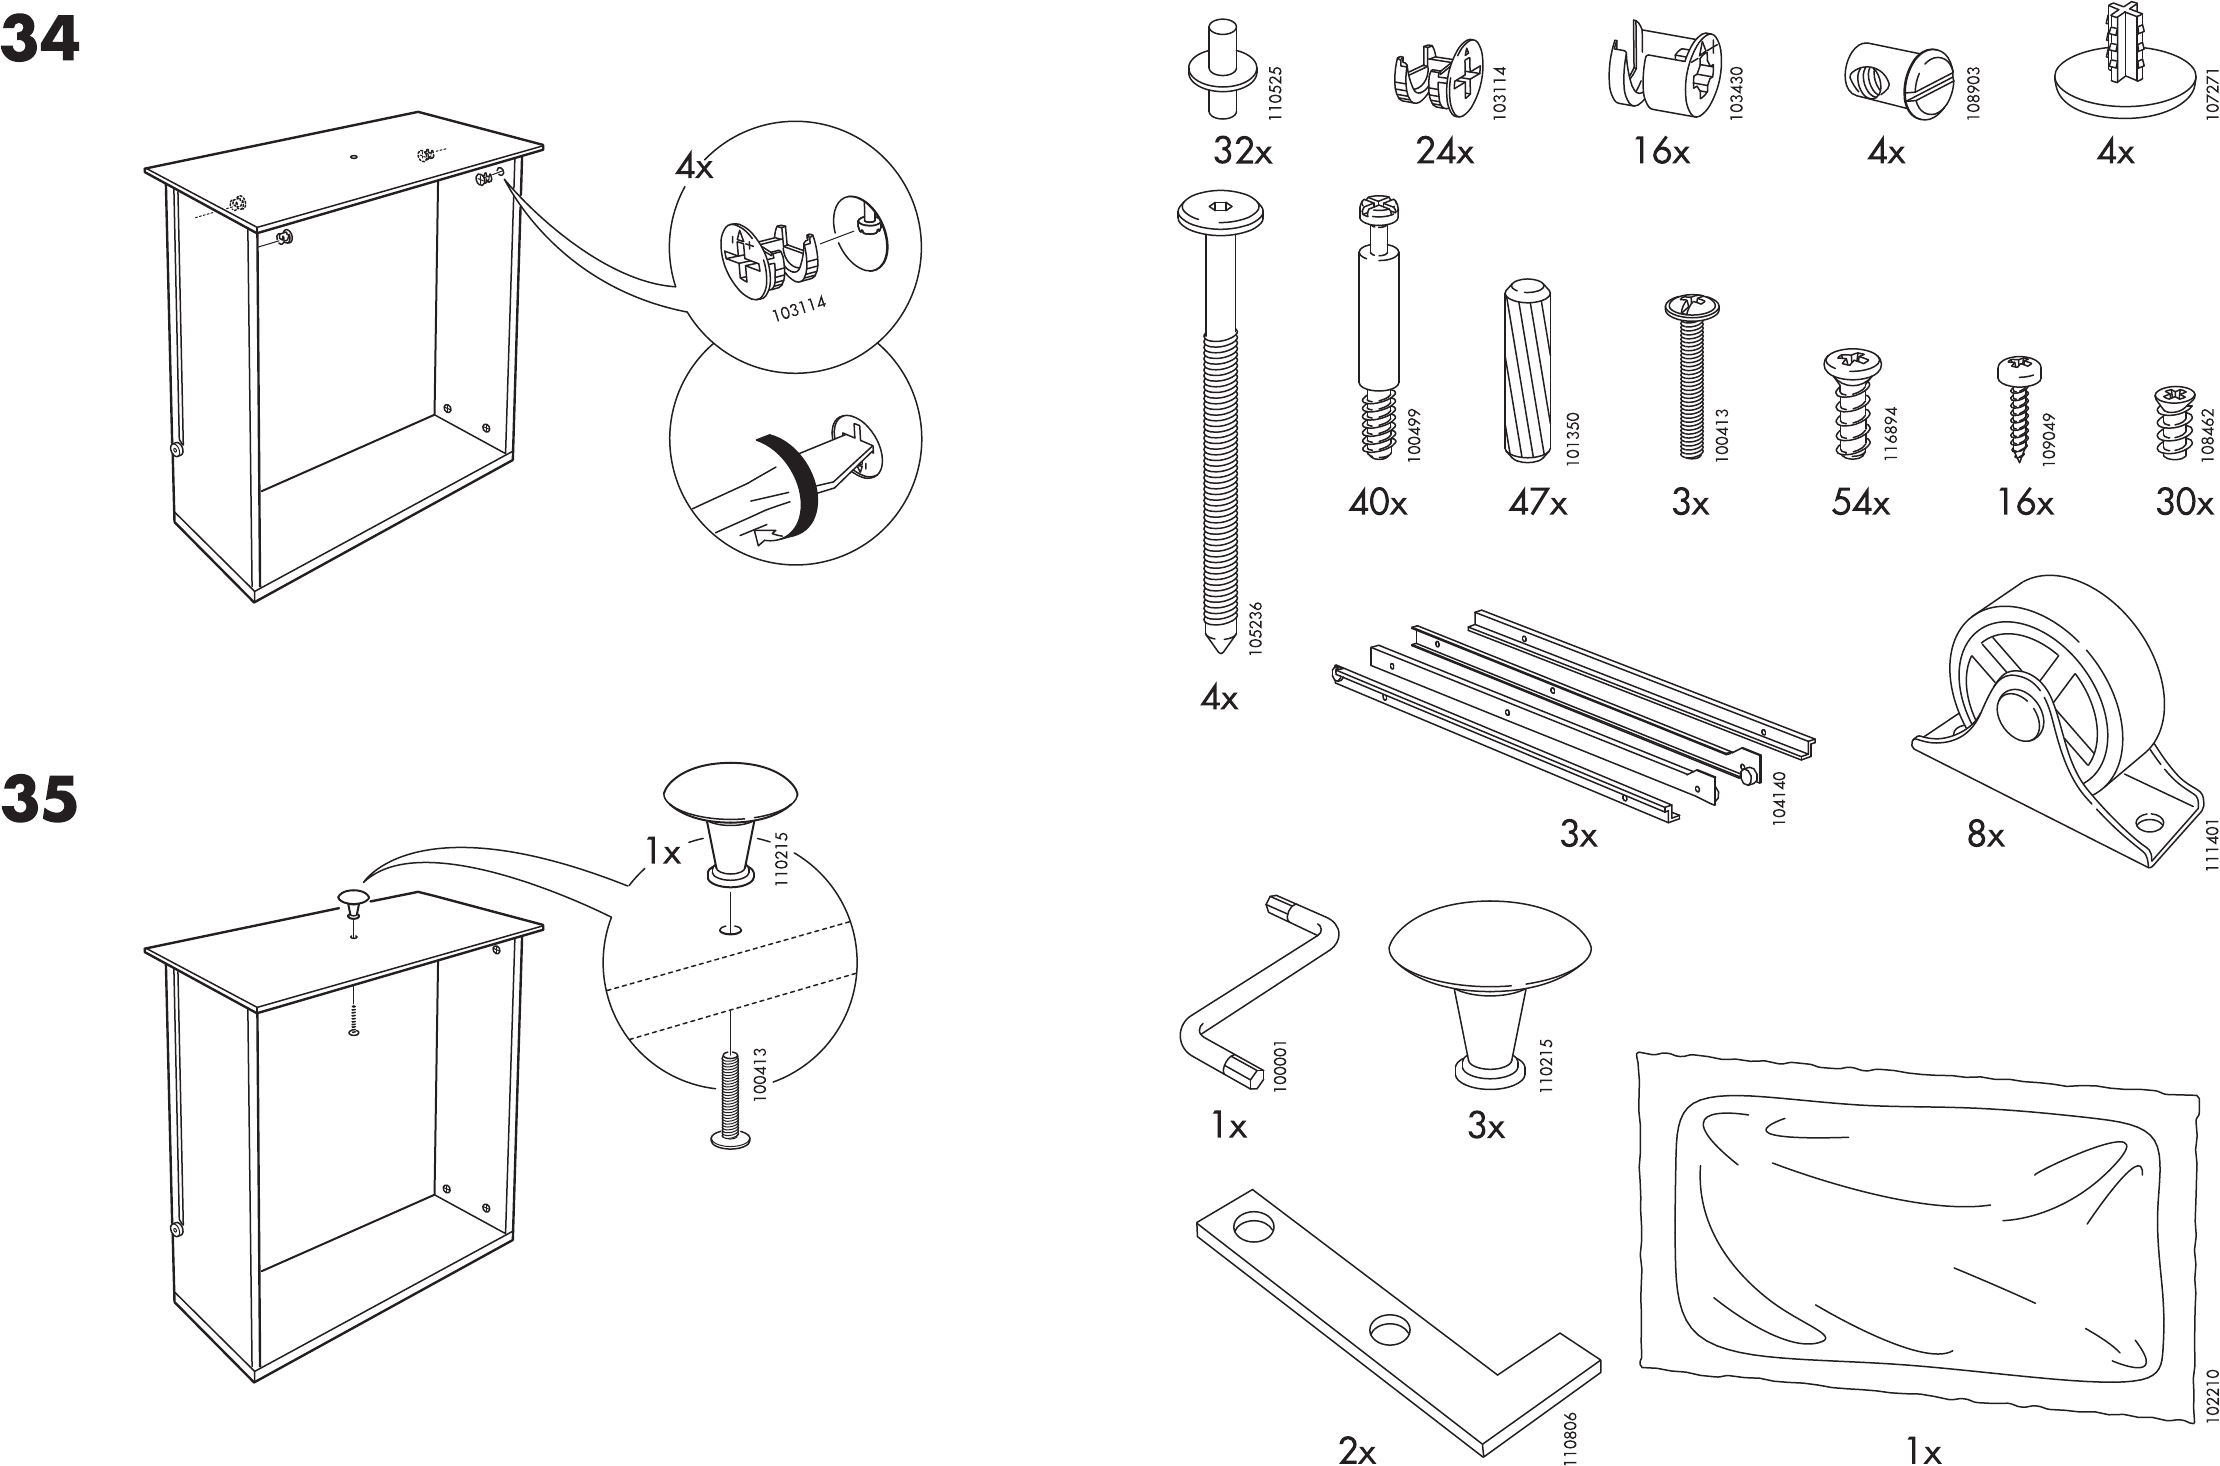 ikea stuva assembly instructions pdf